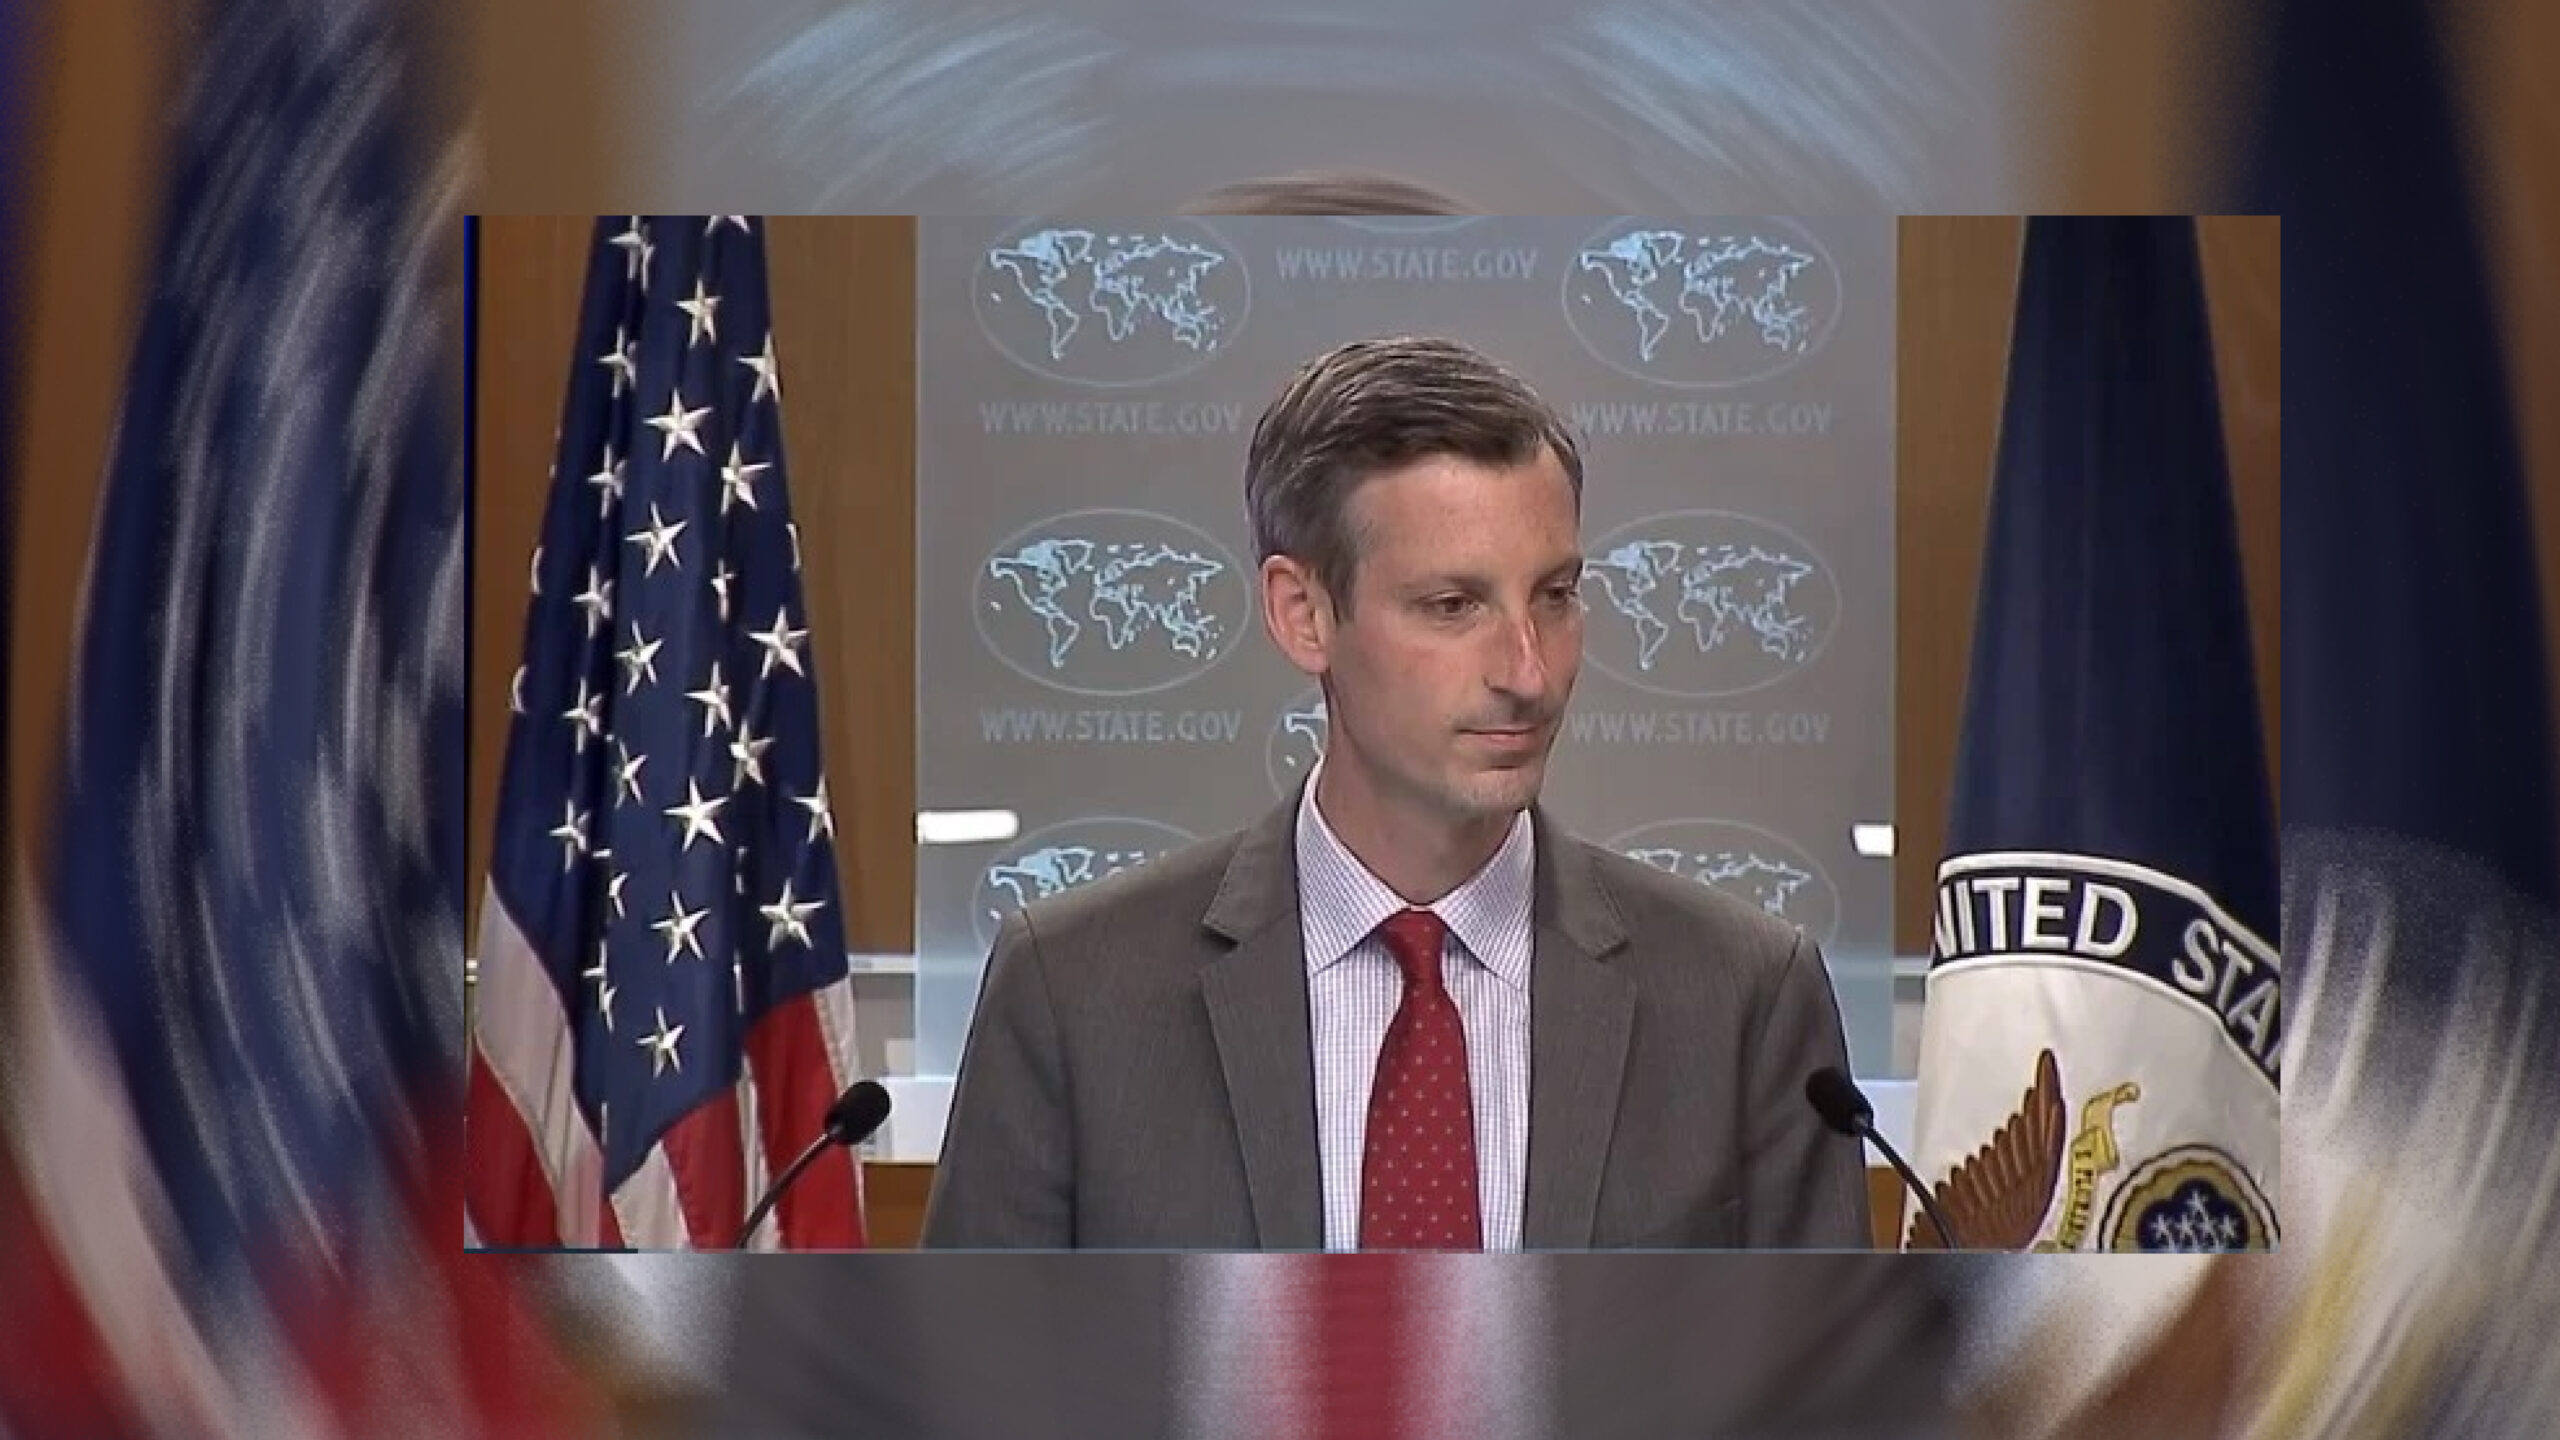 US official unable to answer reporters with a straight face on Palestine issue